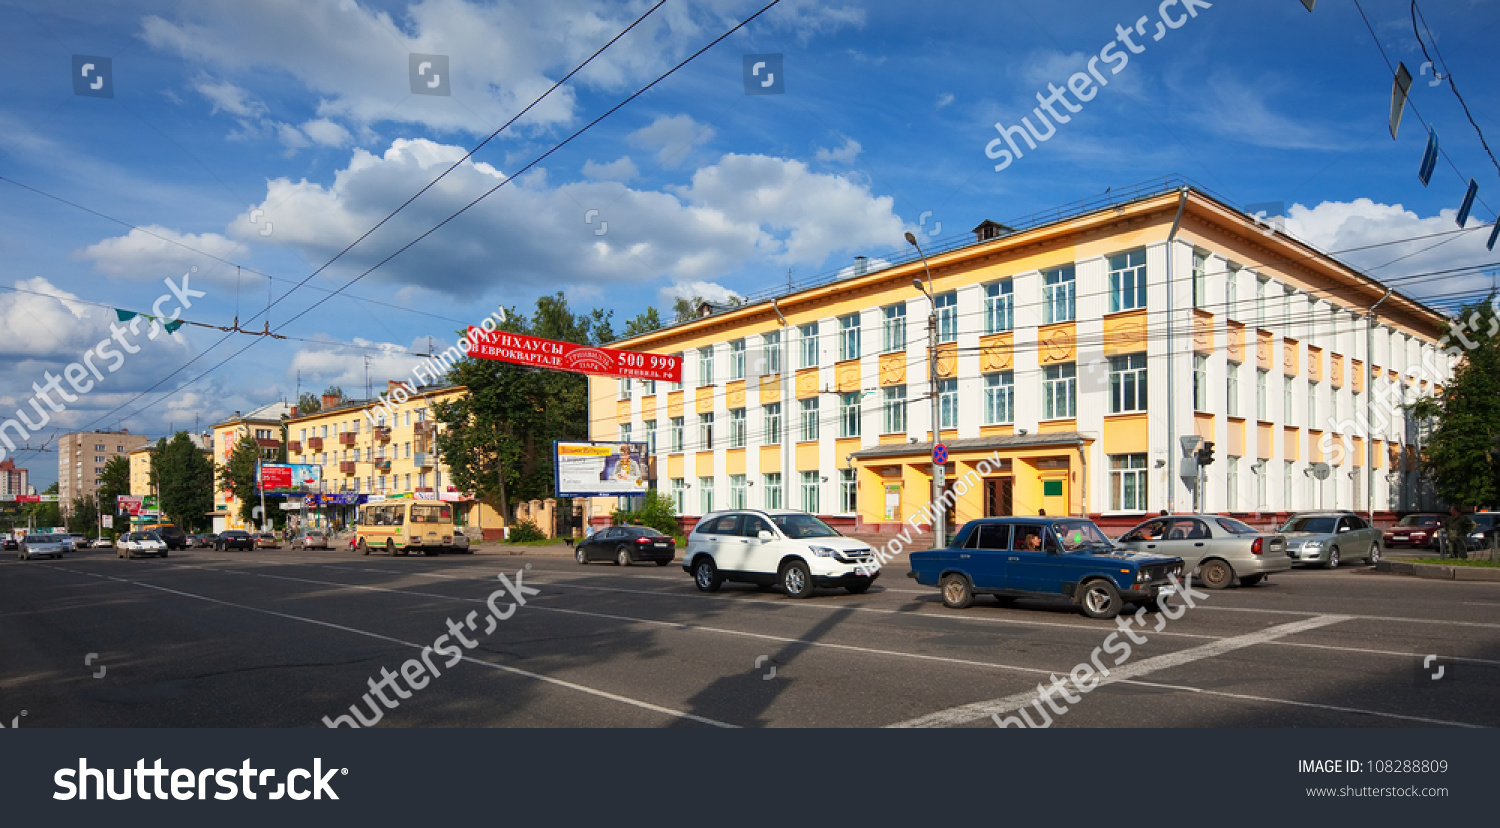 Ivanovo: in the area will build 180 thousand square meters. meters of housing 71